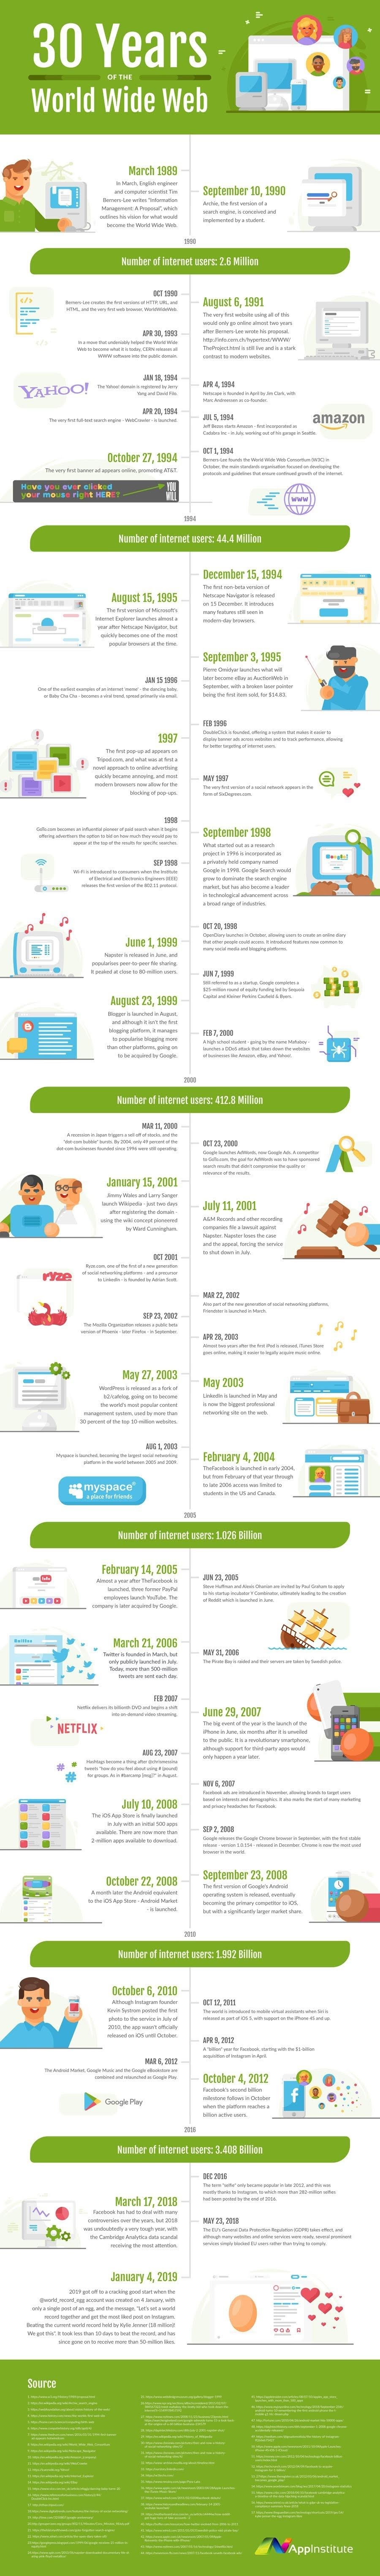 Celebrating 30 Years of the World Wide Web #infographic